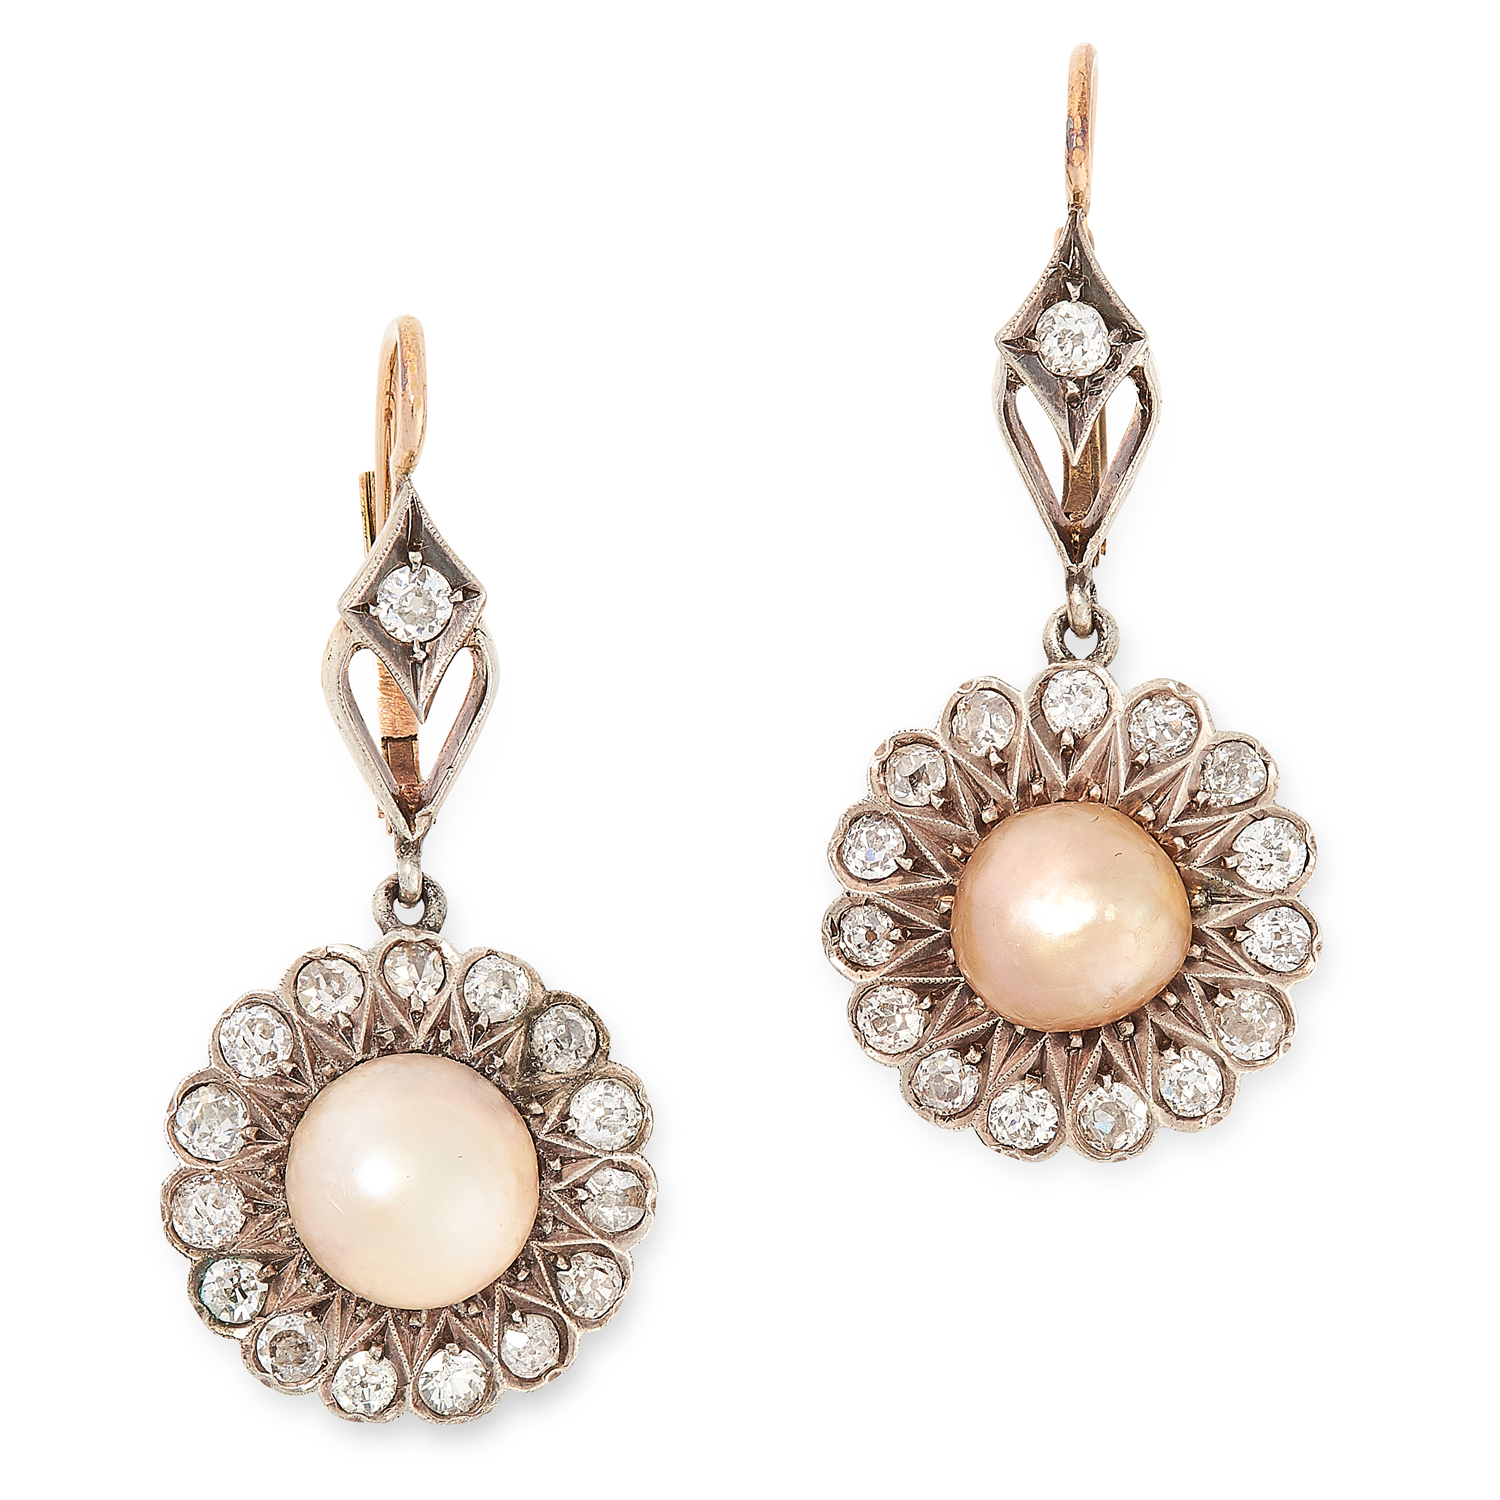 A PAIR OF ANTIQUE NATURAL PEARL AND DIAMOND EARRINGS, 19TH CENTURY in yellow gold and silver, each